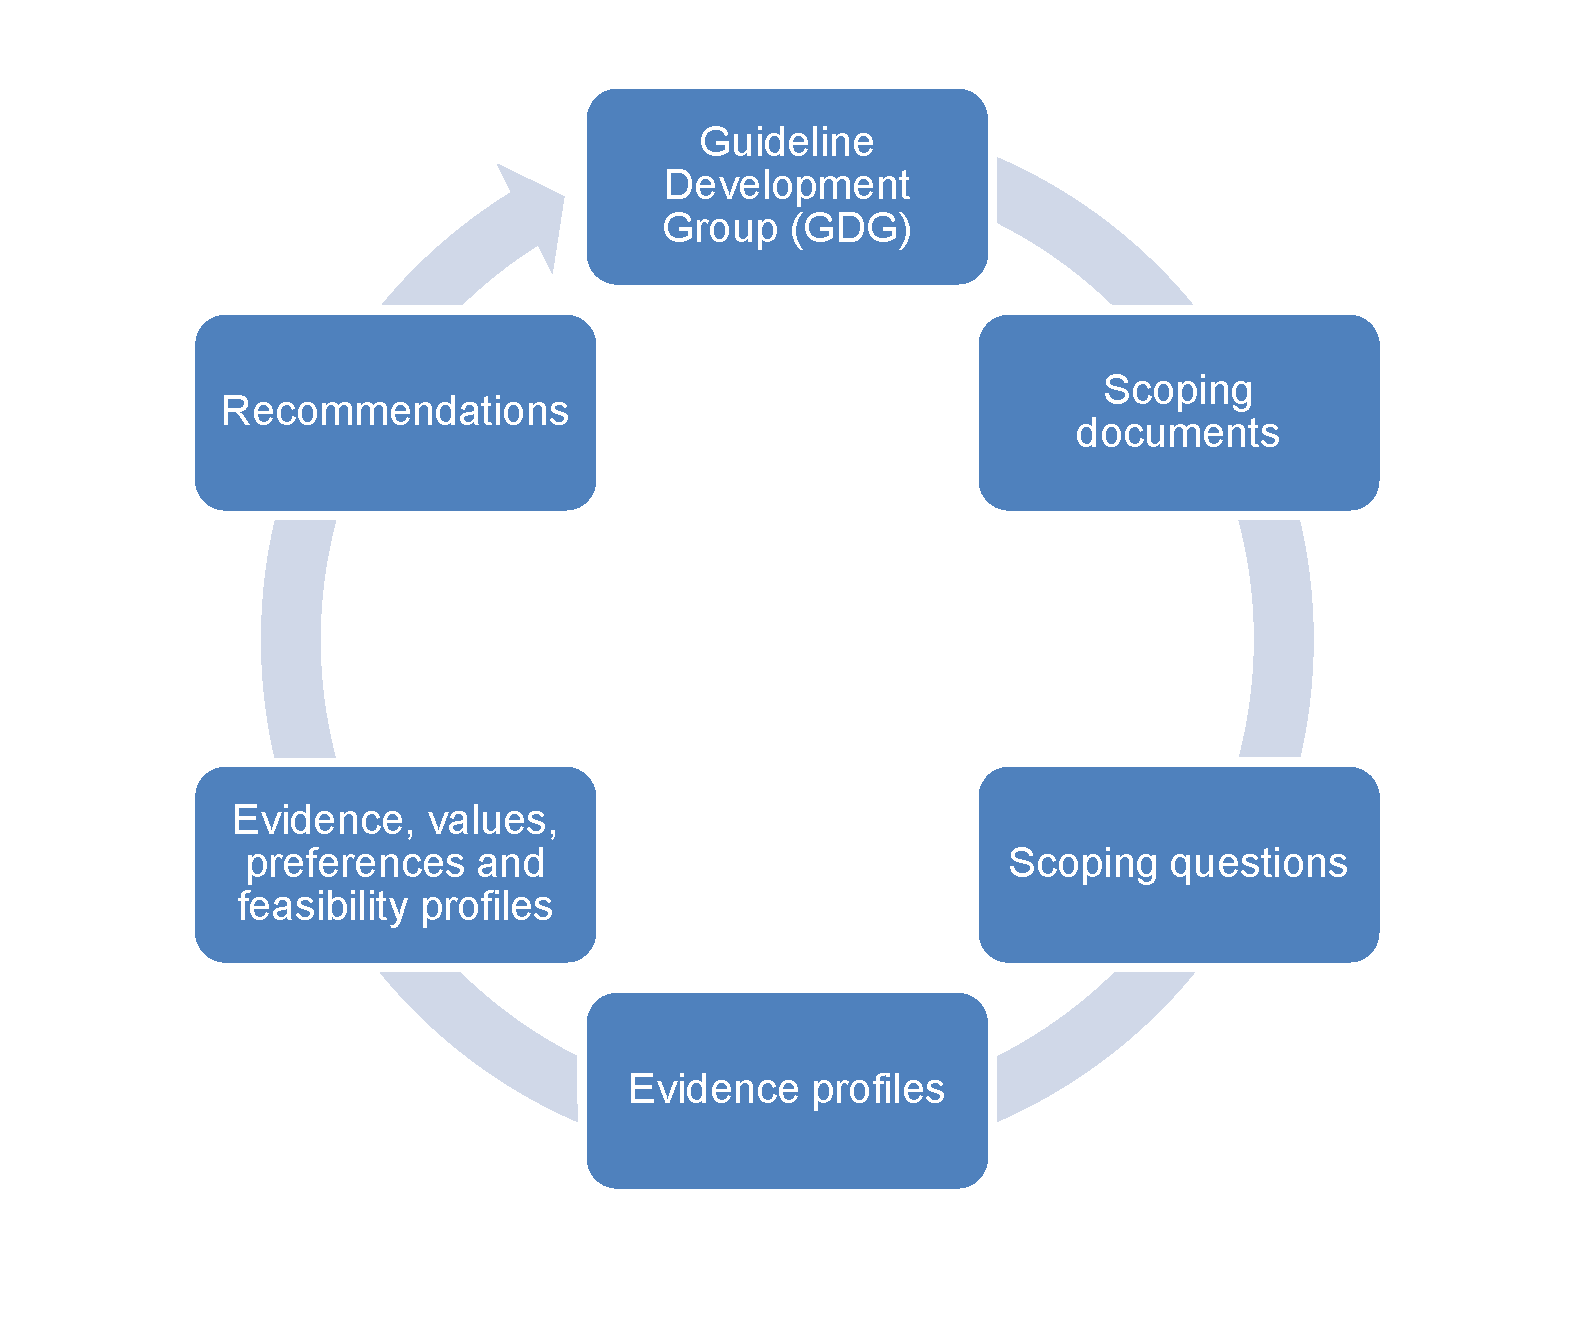 Pathway describing the process of recommendation development.